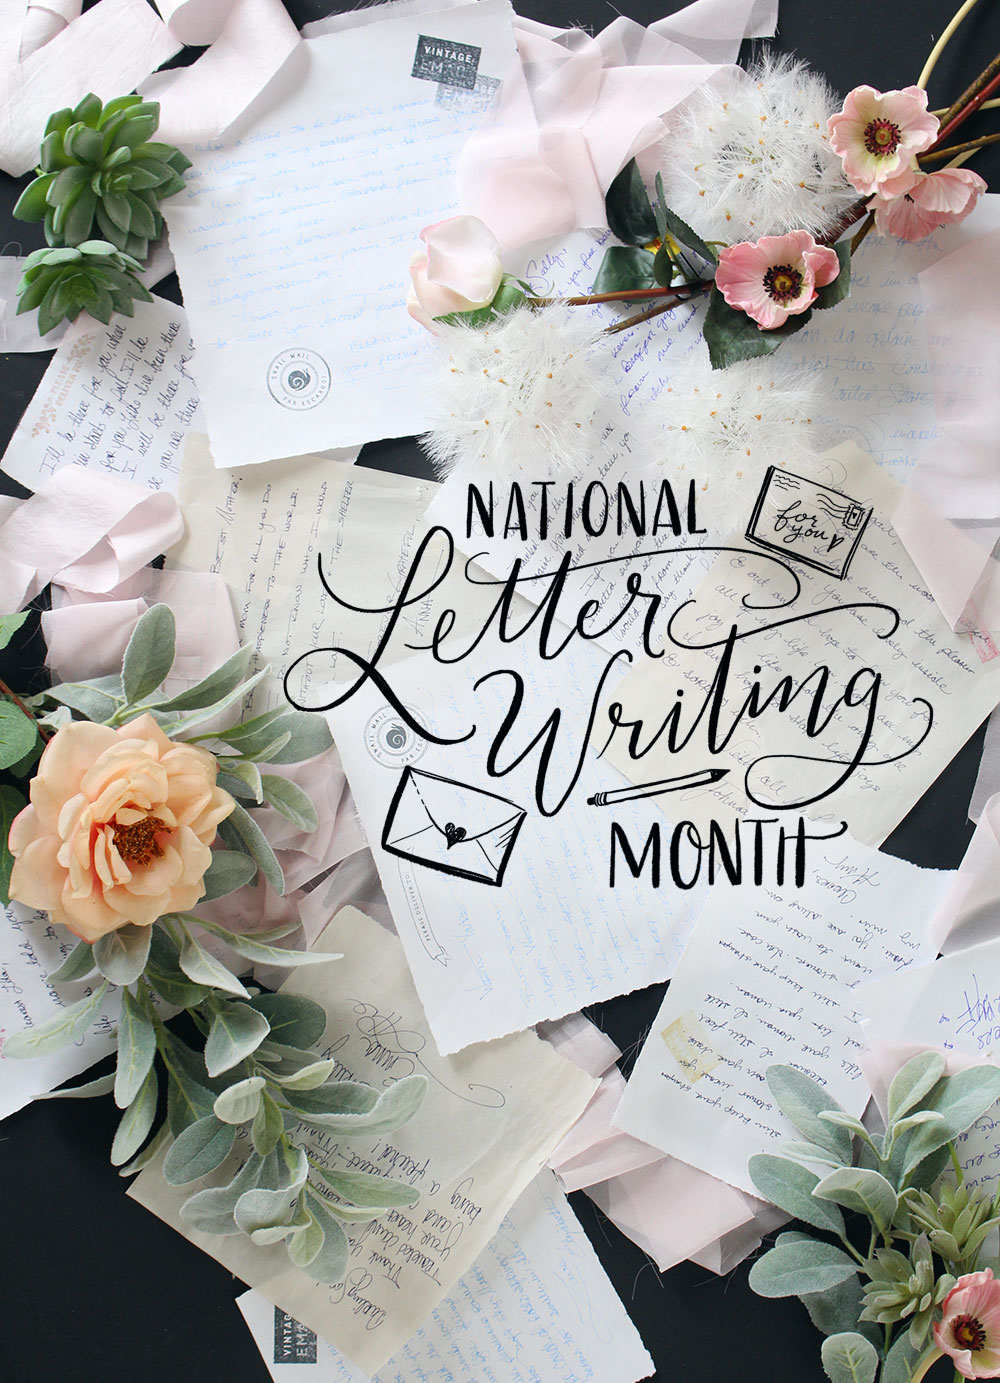 April is National Letter Writing Month and we are celebrating with 3 tips for writing more letters!